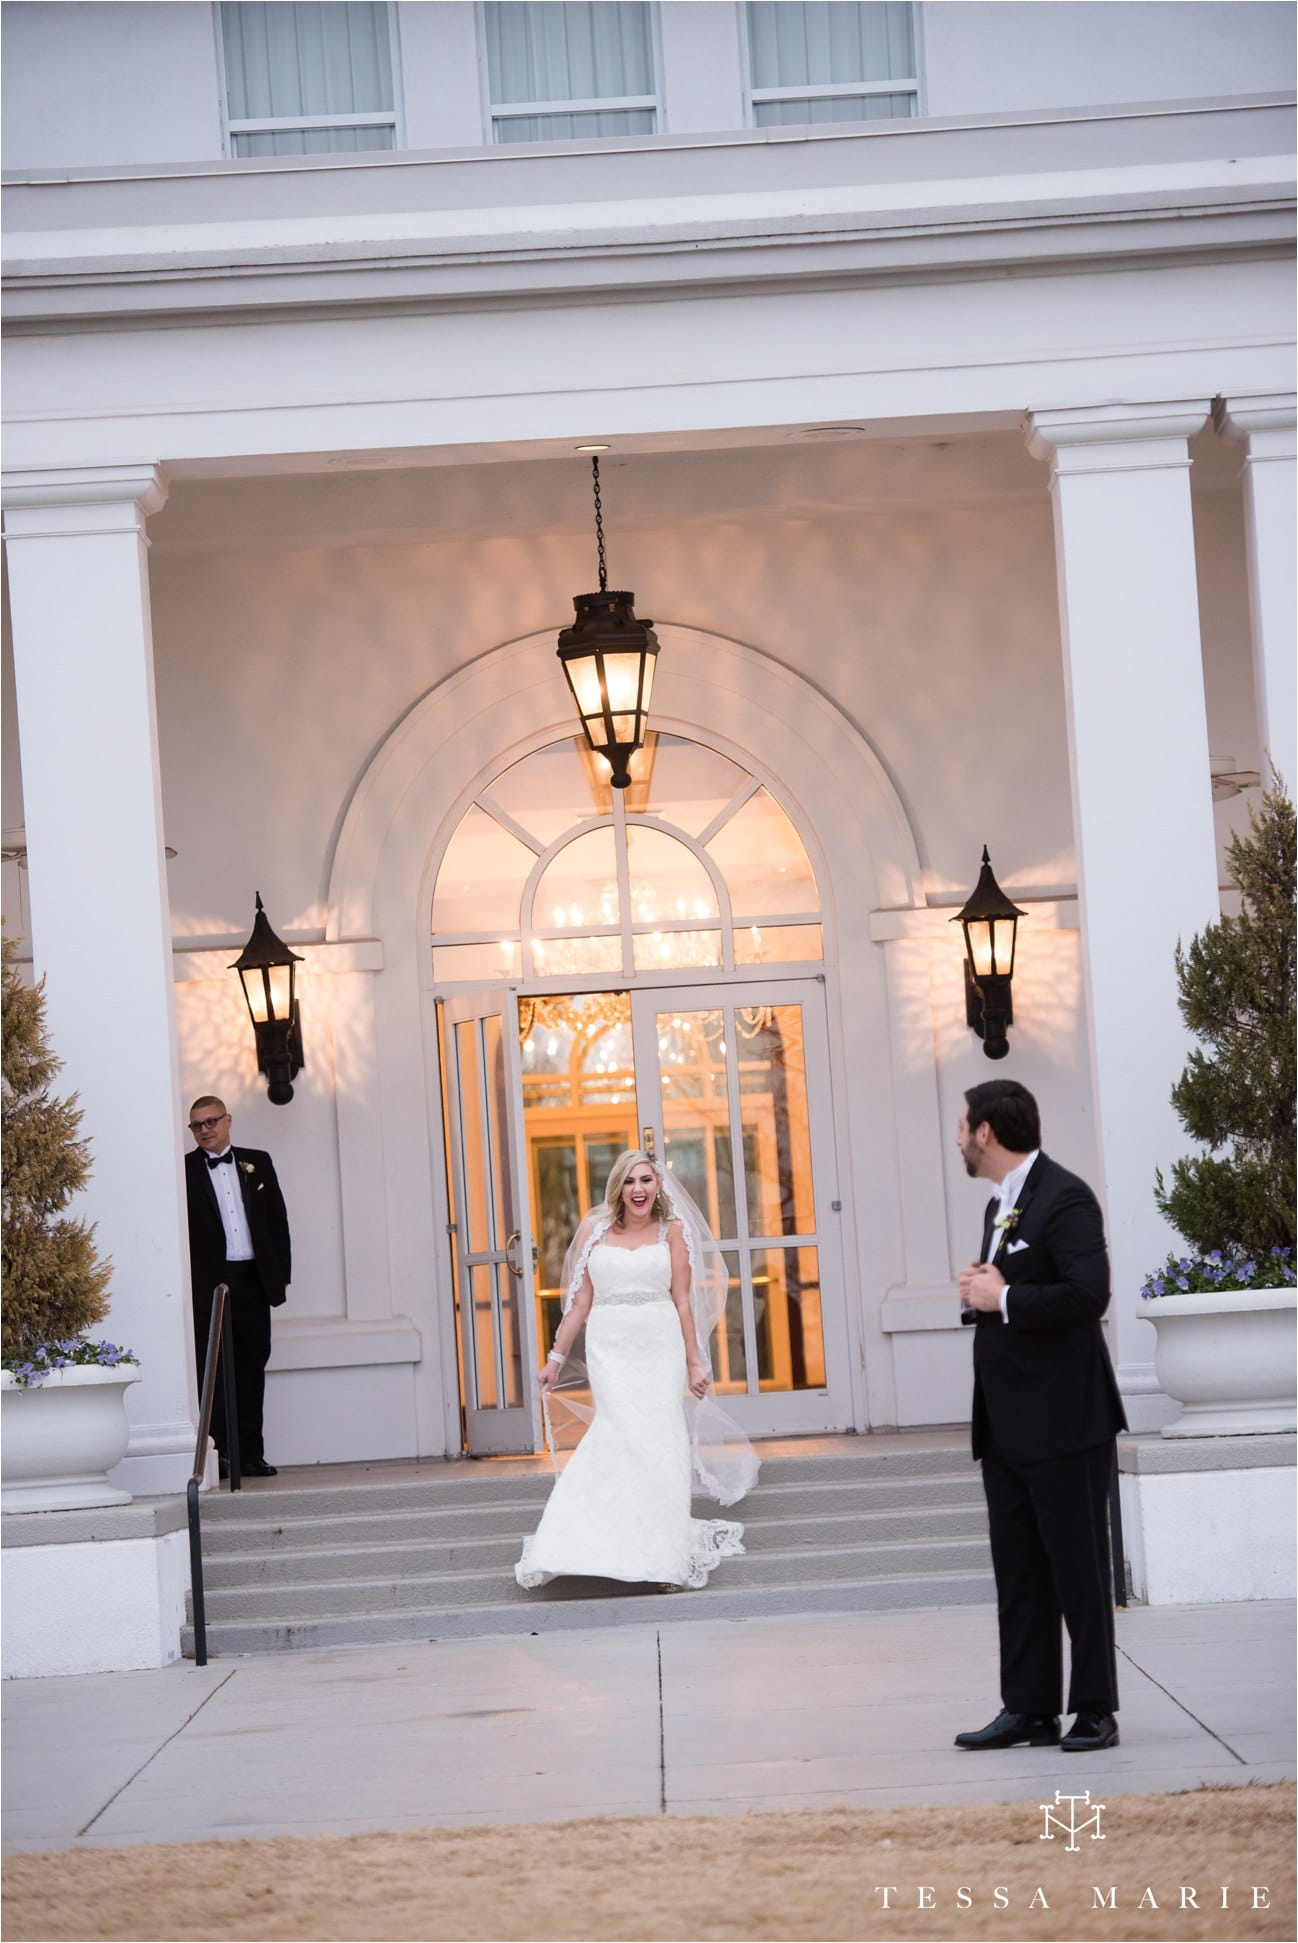 tessa_marie_brickyard_marietta_new_years_wedding_pictures_candid_emotional_wedding_portraits_0038